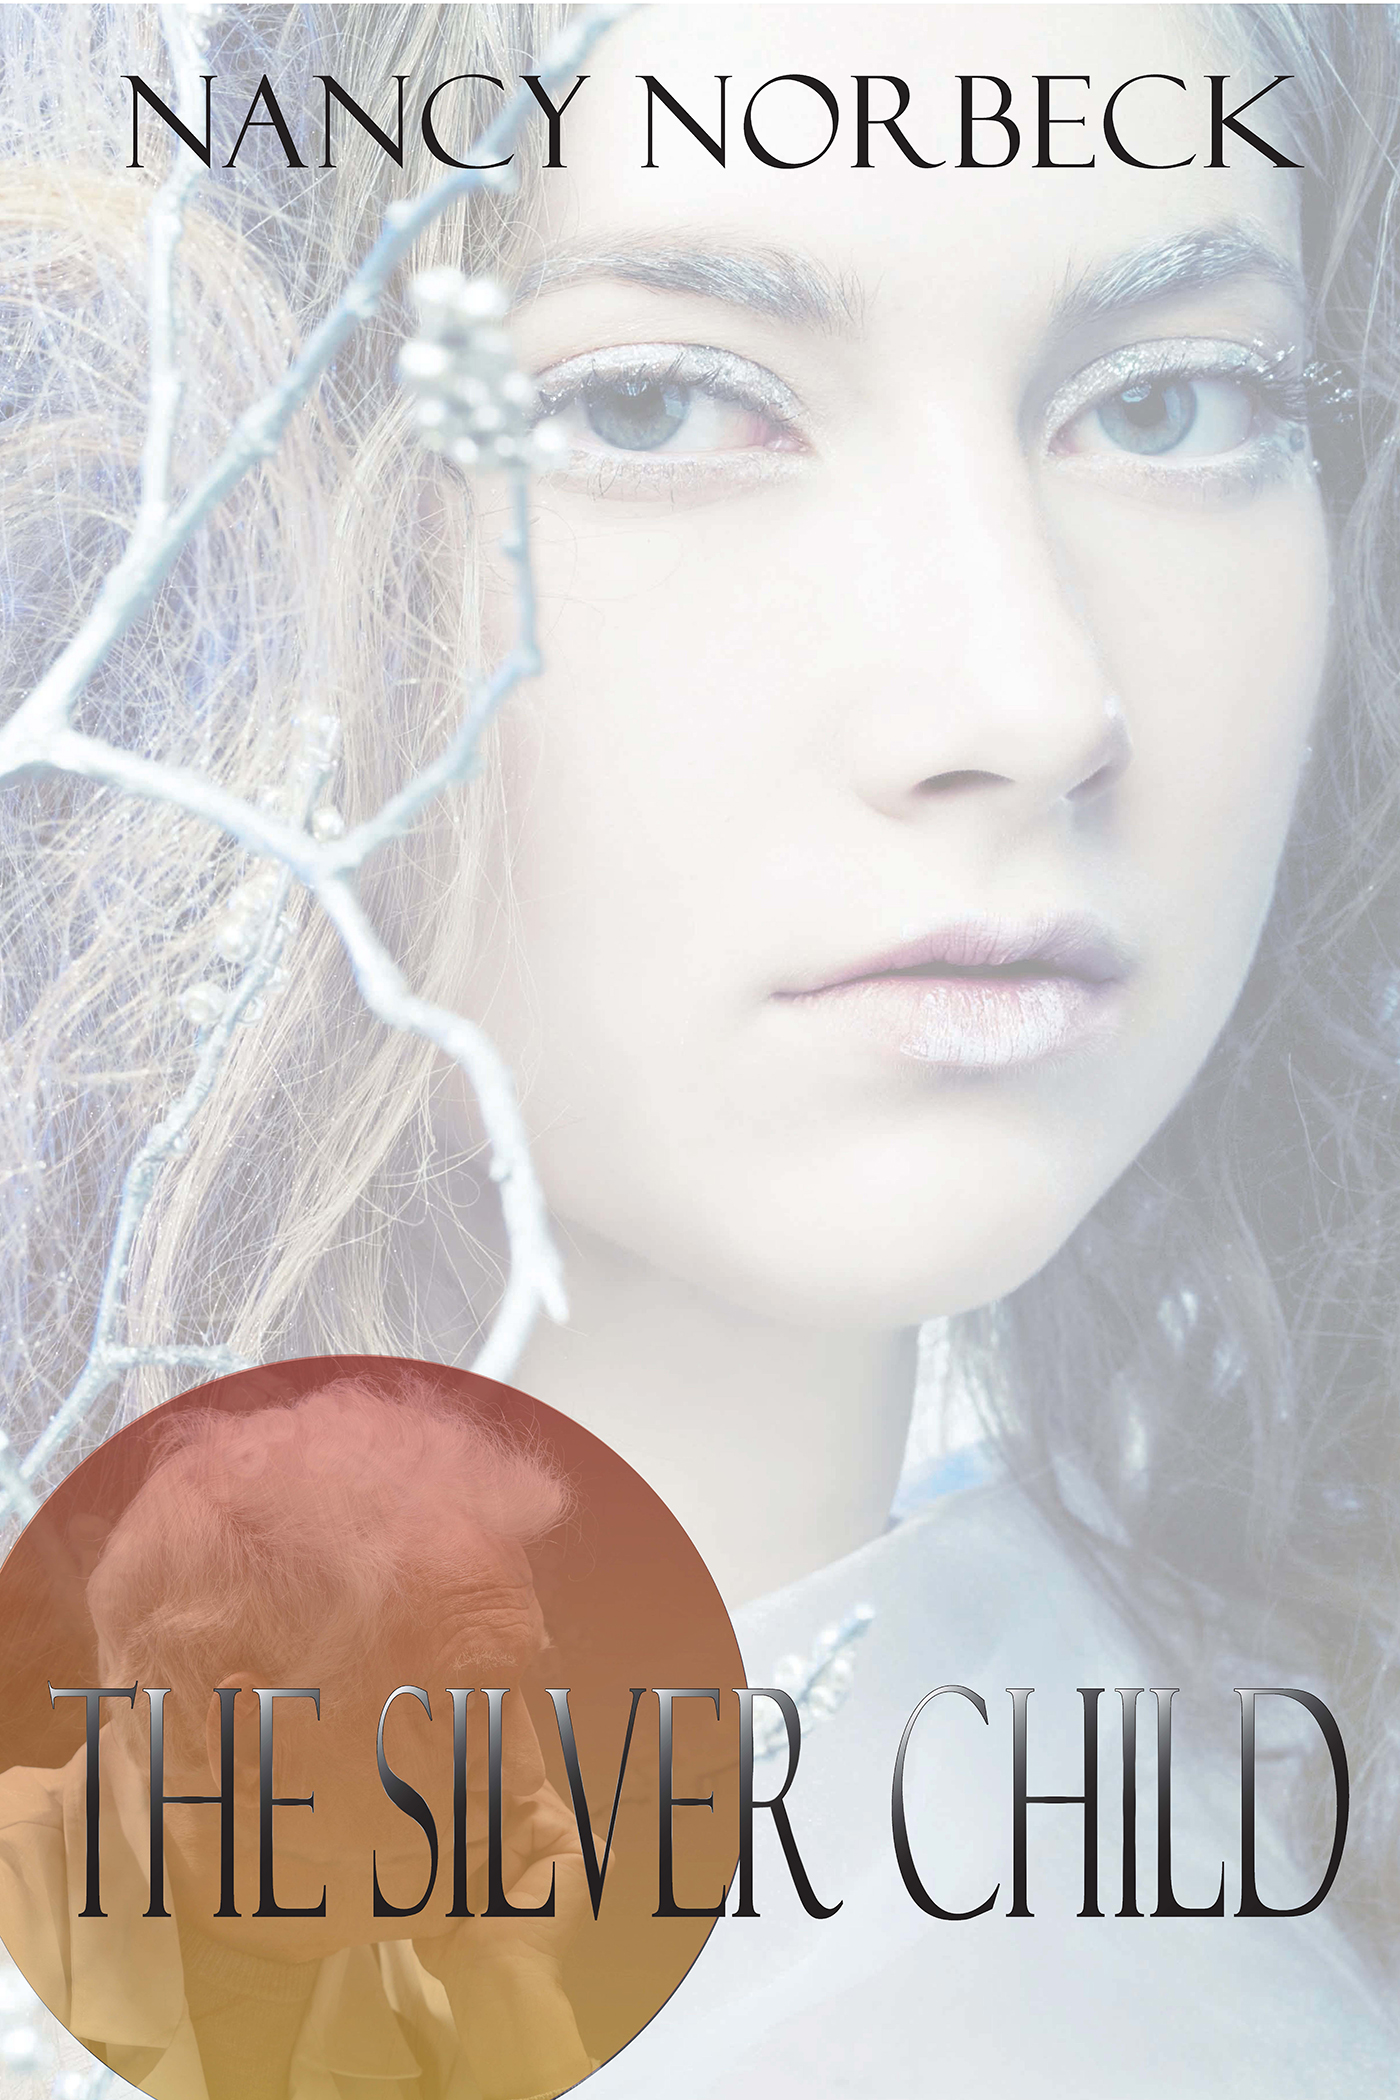 And have you read… The Silver Child?